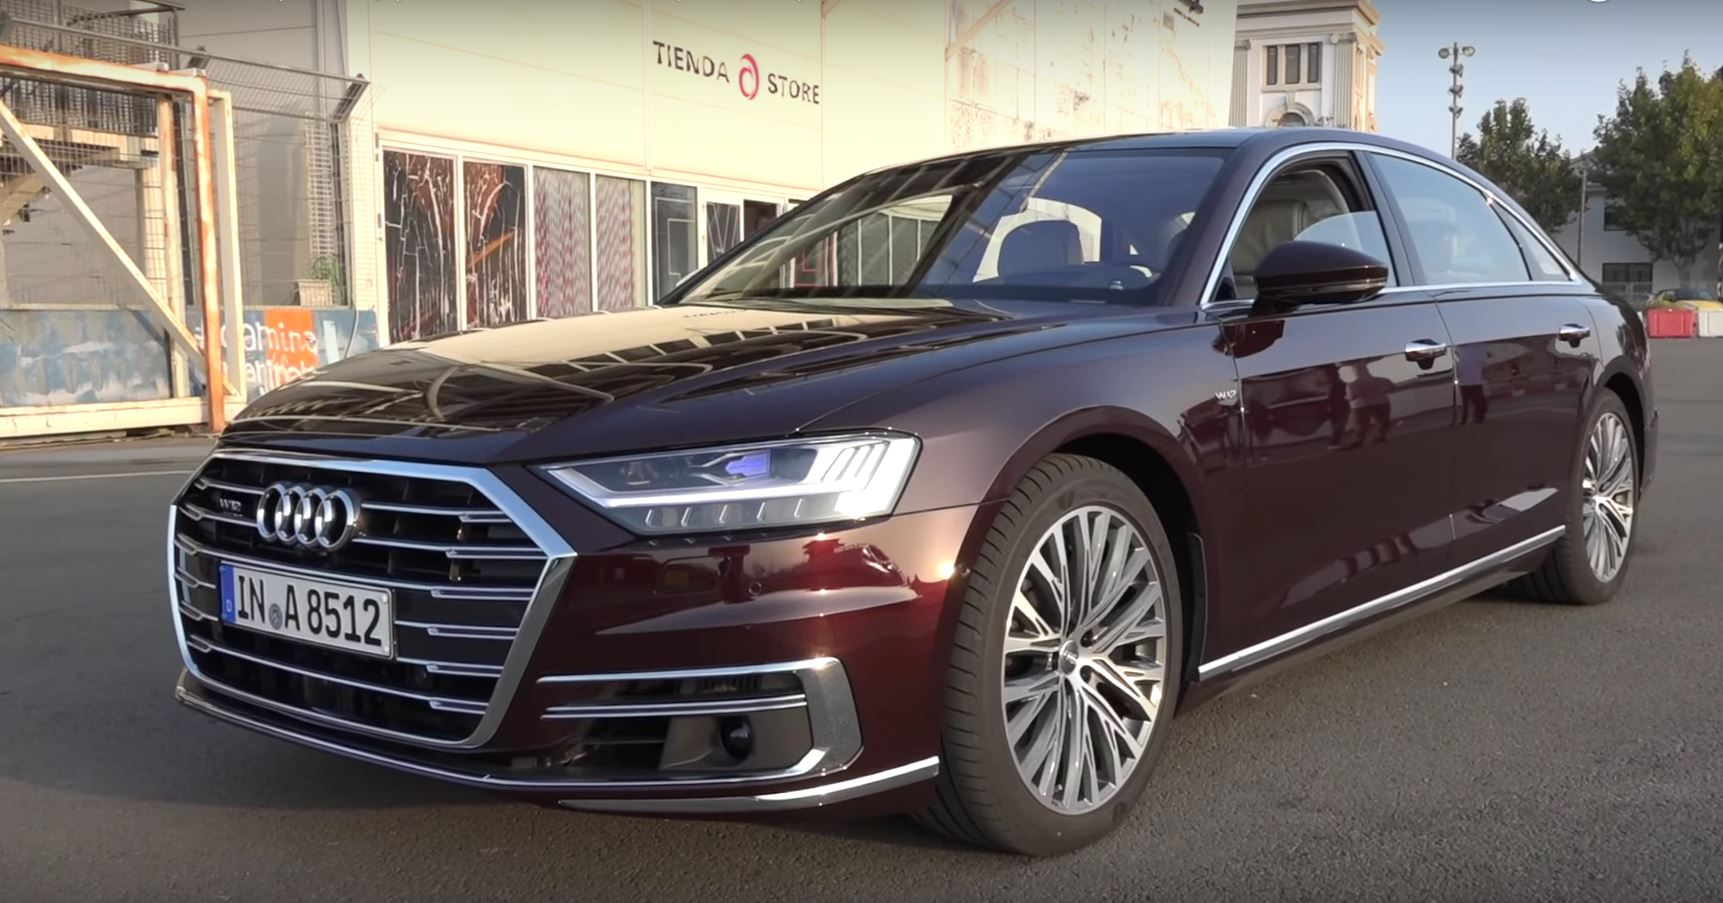 Audi A W Has HP But It Doesnt Sound Good Autoevolution - Audi a8 w12